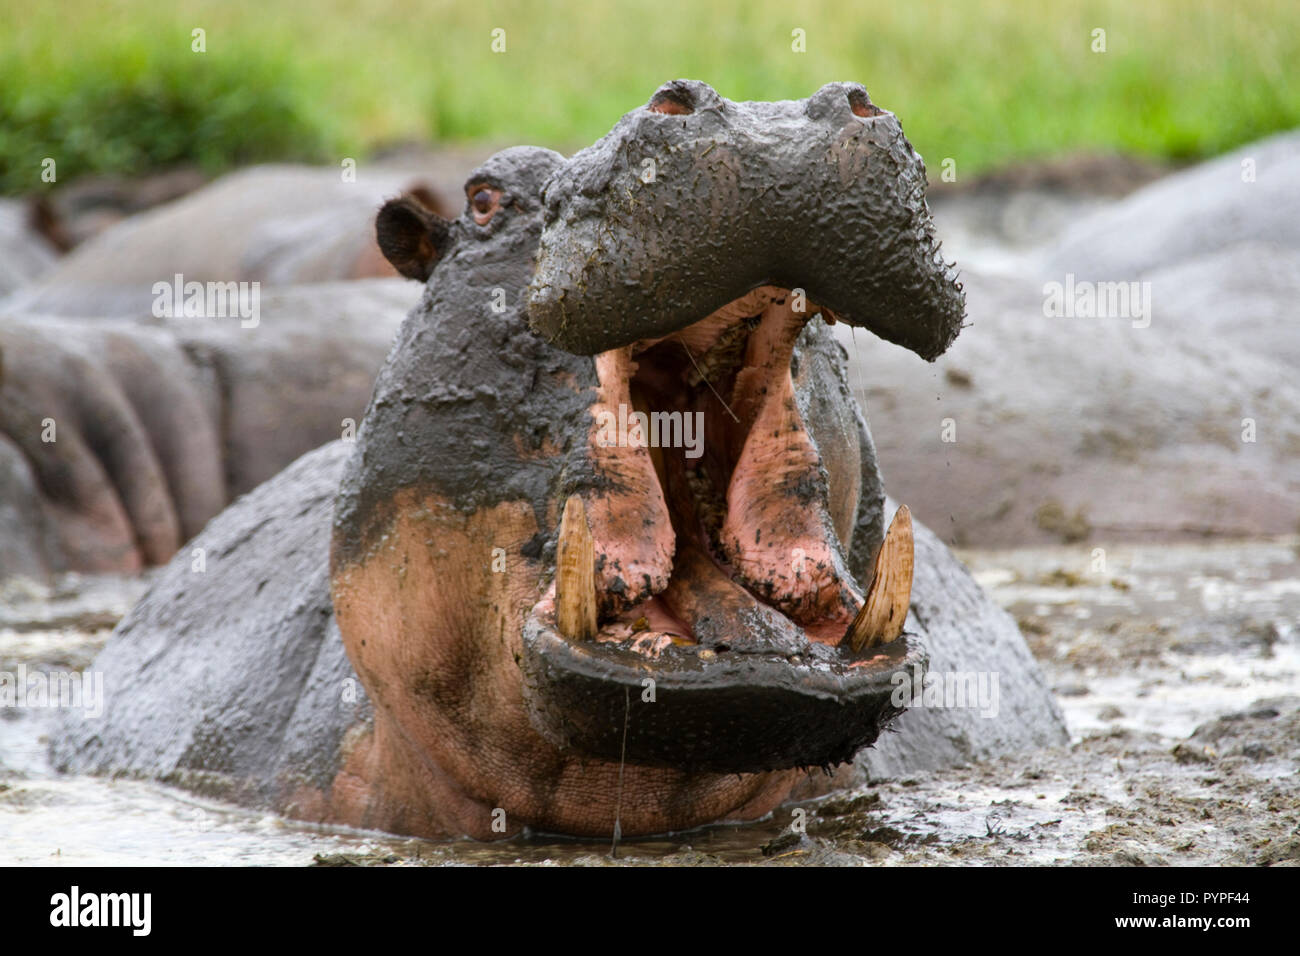 Hippo bulls are very territorial and are quick to threaten any possible intrusion into their domain making them one of africas most dangerous animals - Stock Image